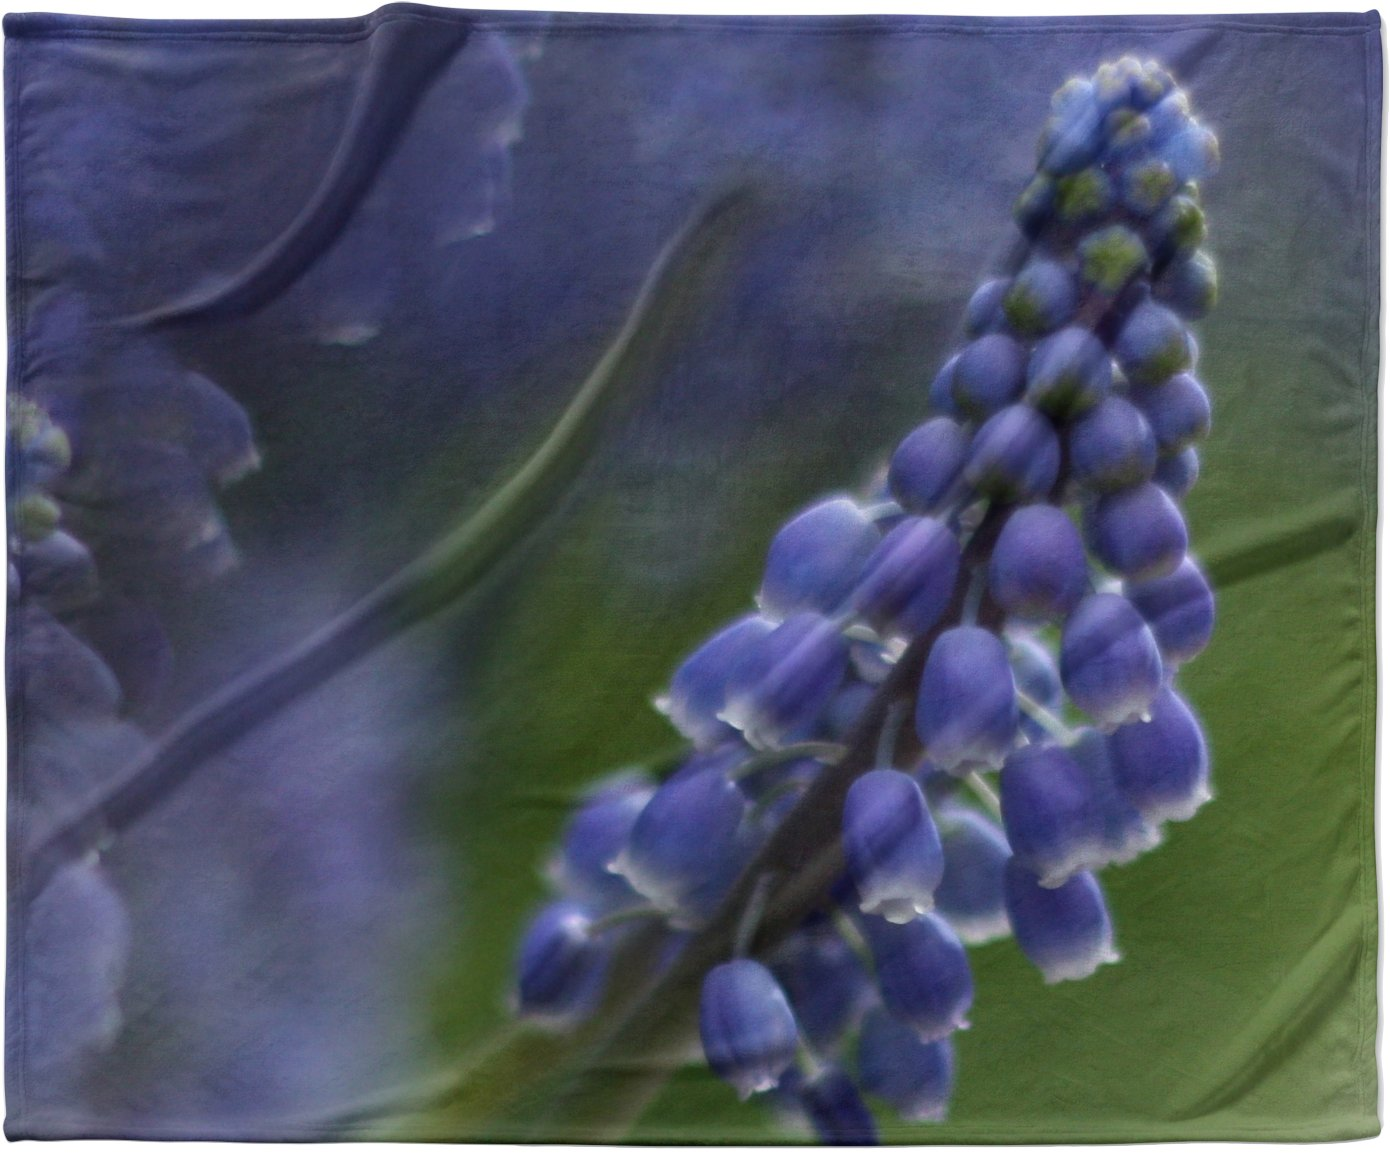 KESS InHouse Angie Turner 'Grape Hyacinth' Green Purple Fleece Baby Blanket, 40' x 30'